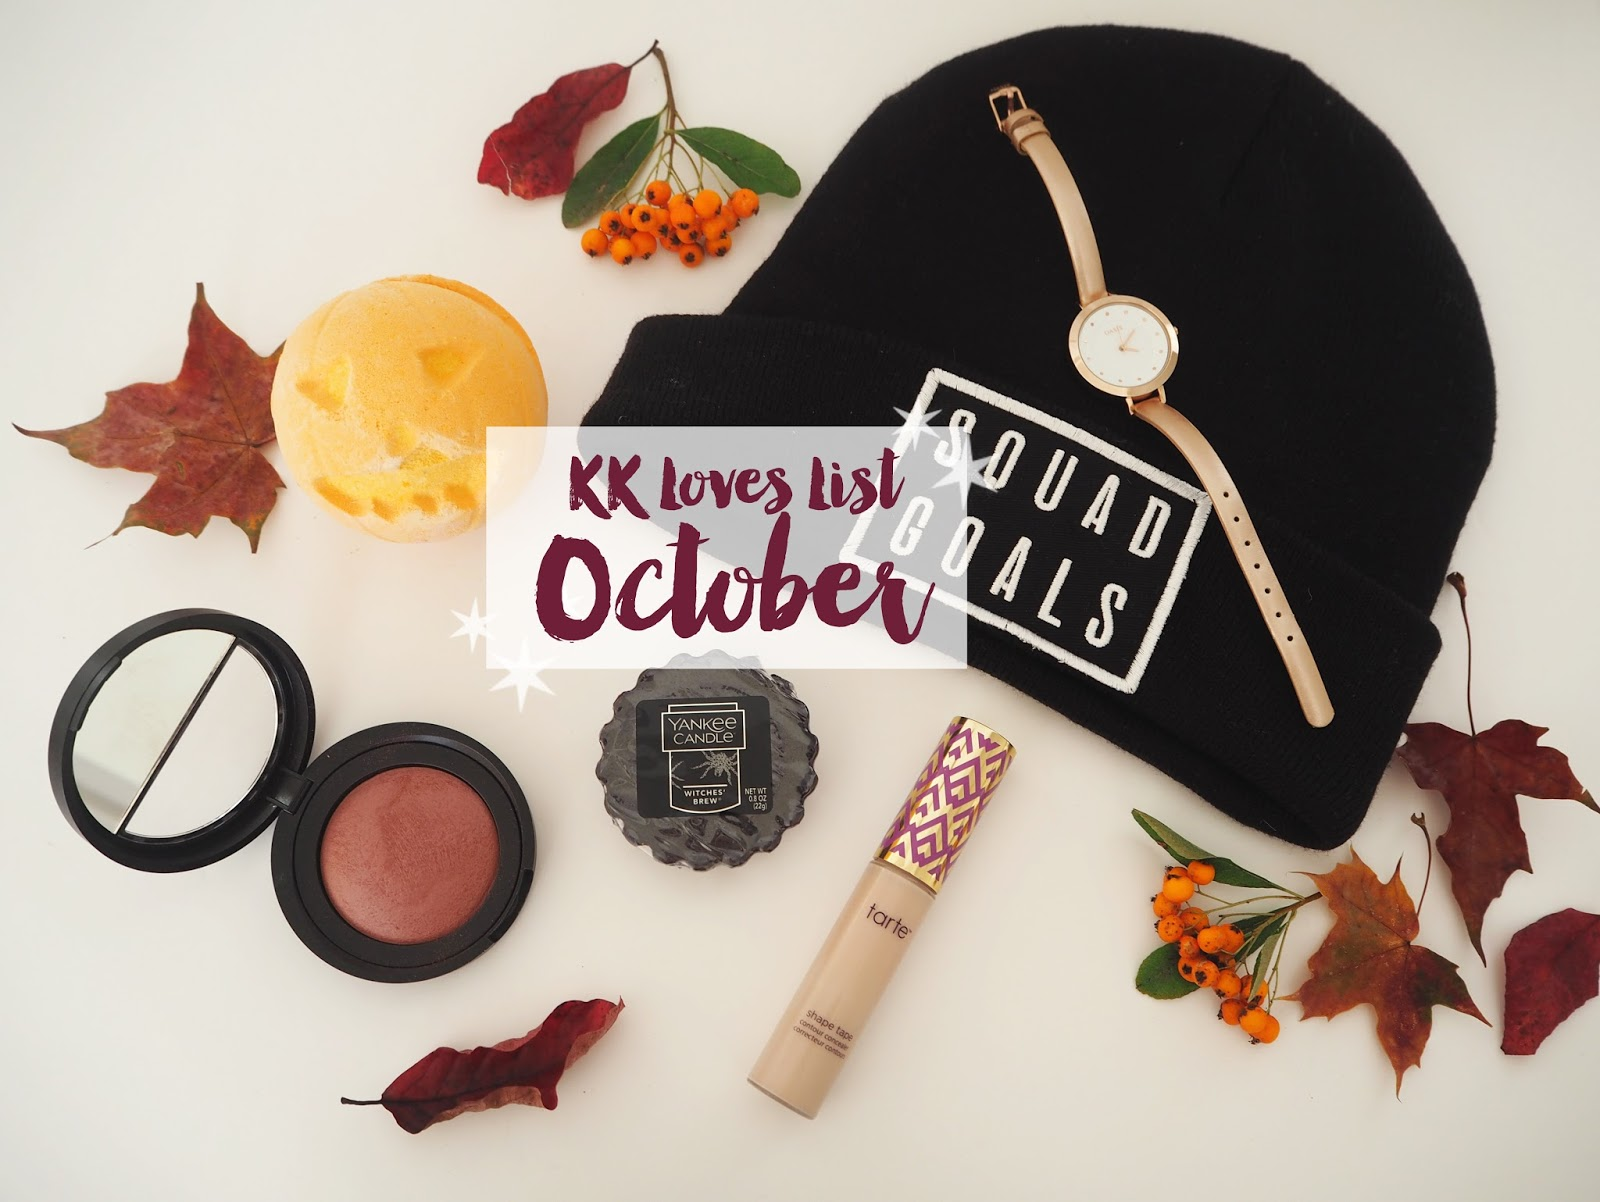 Loves List: October, Katie Kirk Loves, Makeup, Laura Geller, Tarte Cosmetics, Oasis Fashion, Rose Gold Watch, River Island Hat, Squad Goals Hat, Yankee Candles, Lush Cosmetics, Beauty Blogger, UK Fashion Blogger